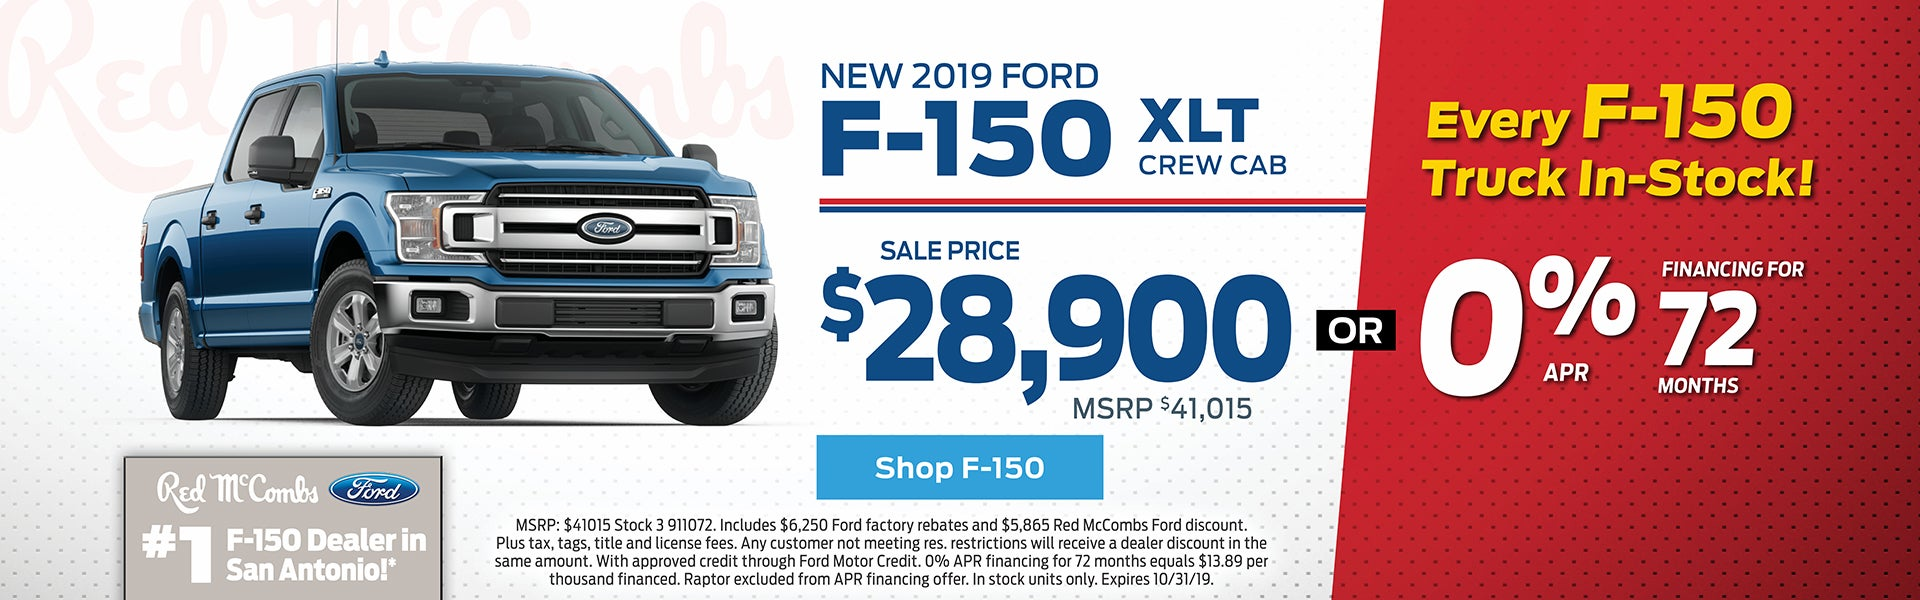 Ford Dealership San Antonio >> Red Mccombs Ford San Antonio S Ford Dealership